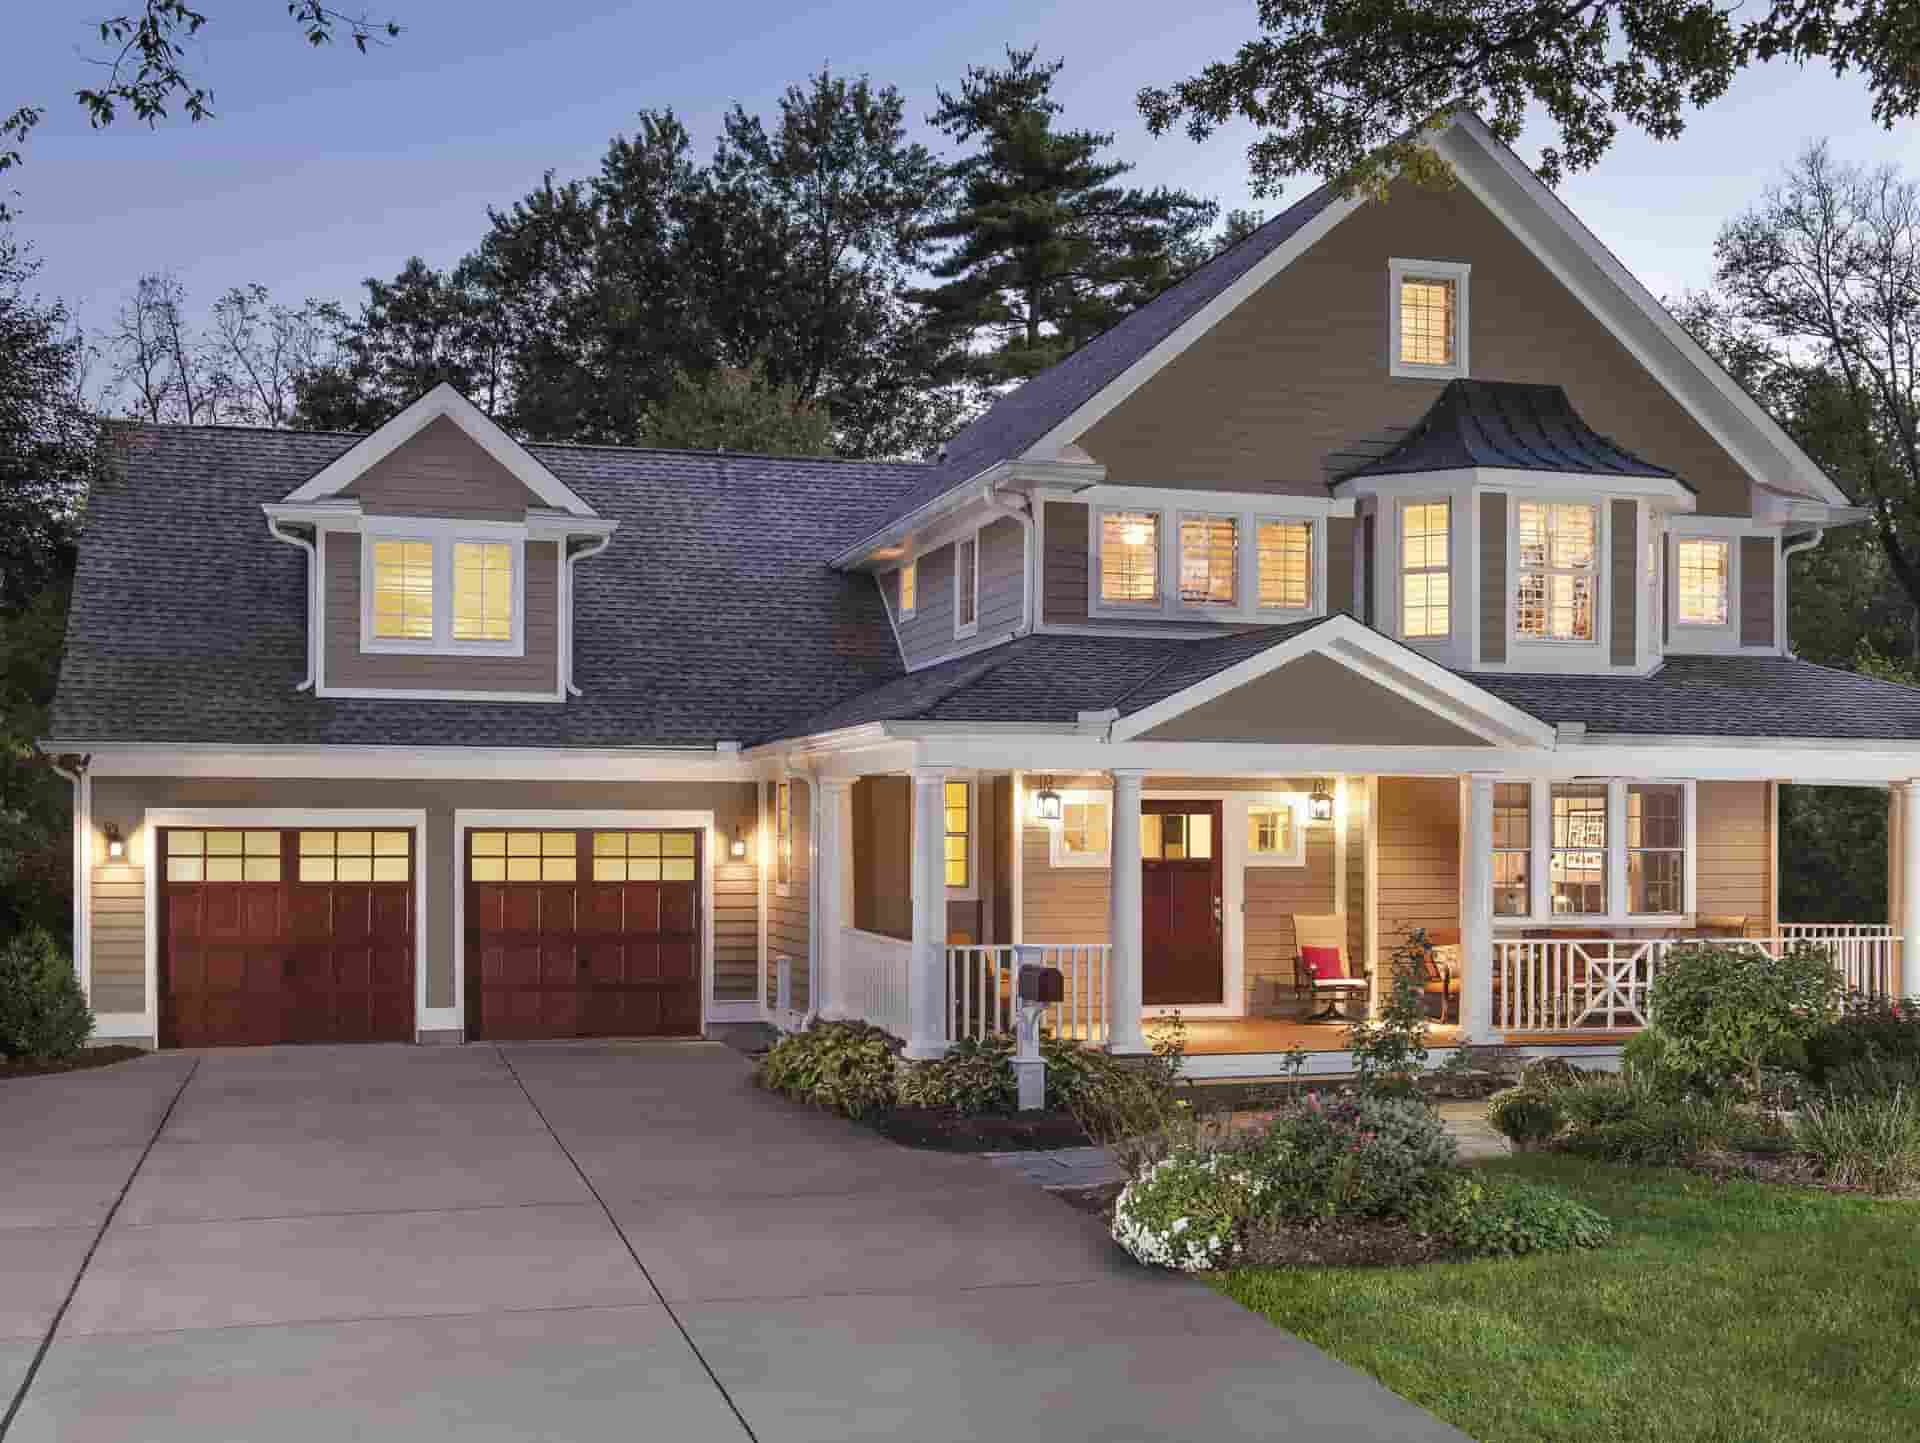 Garage Door Services in Ridgewood, NJ